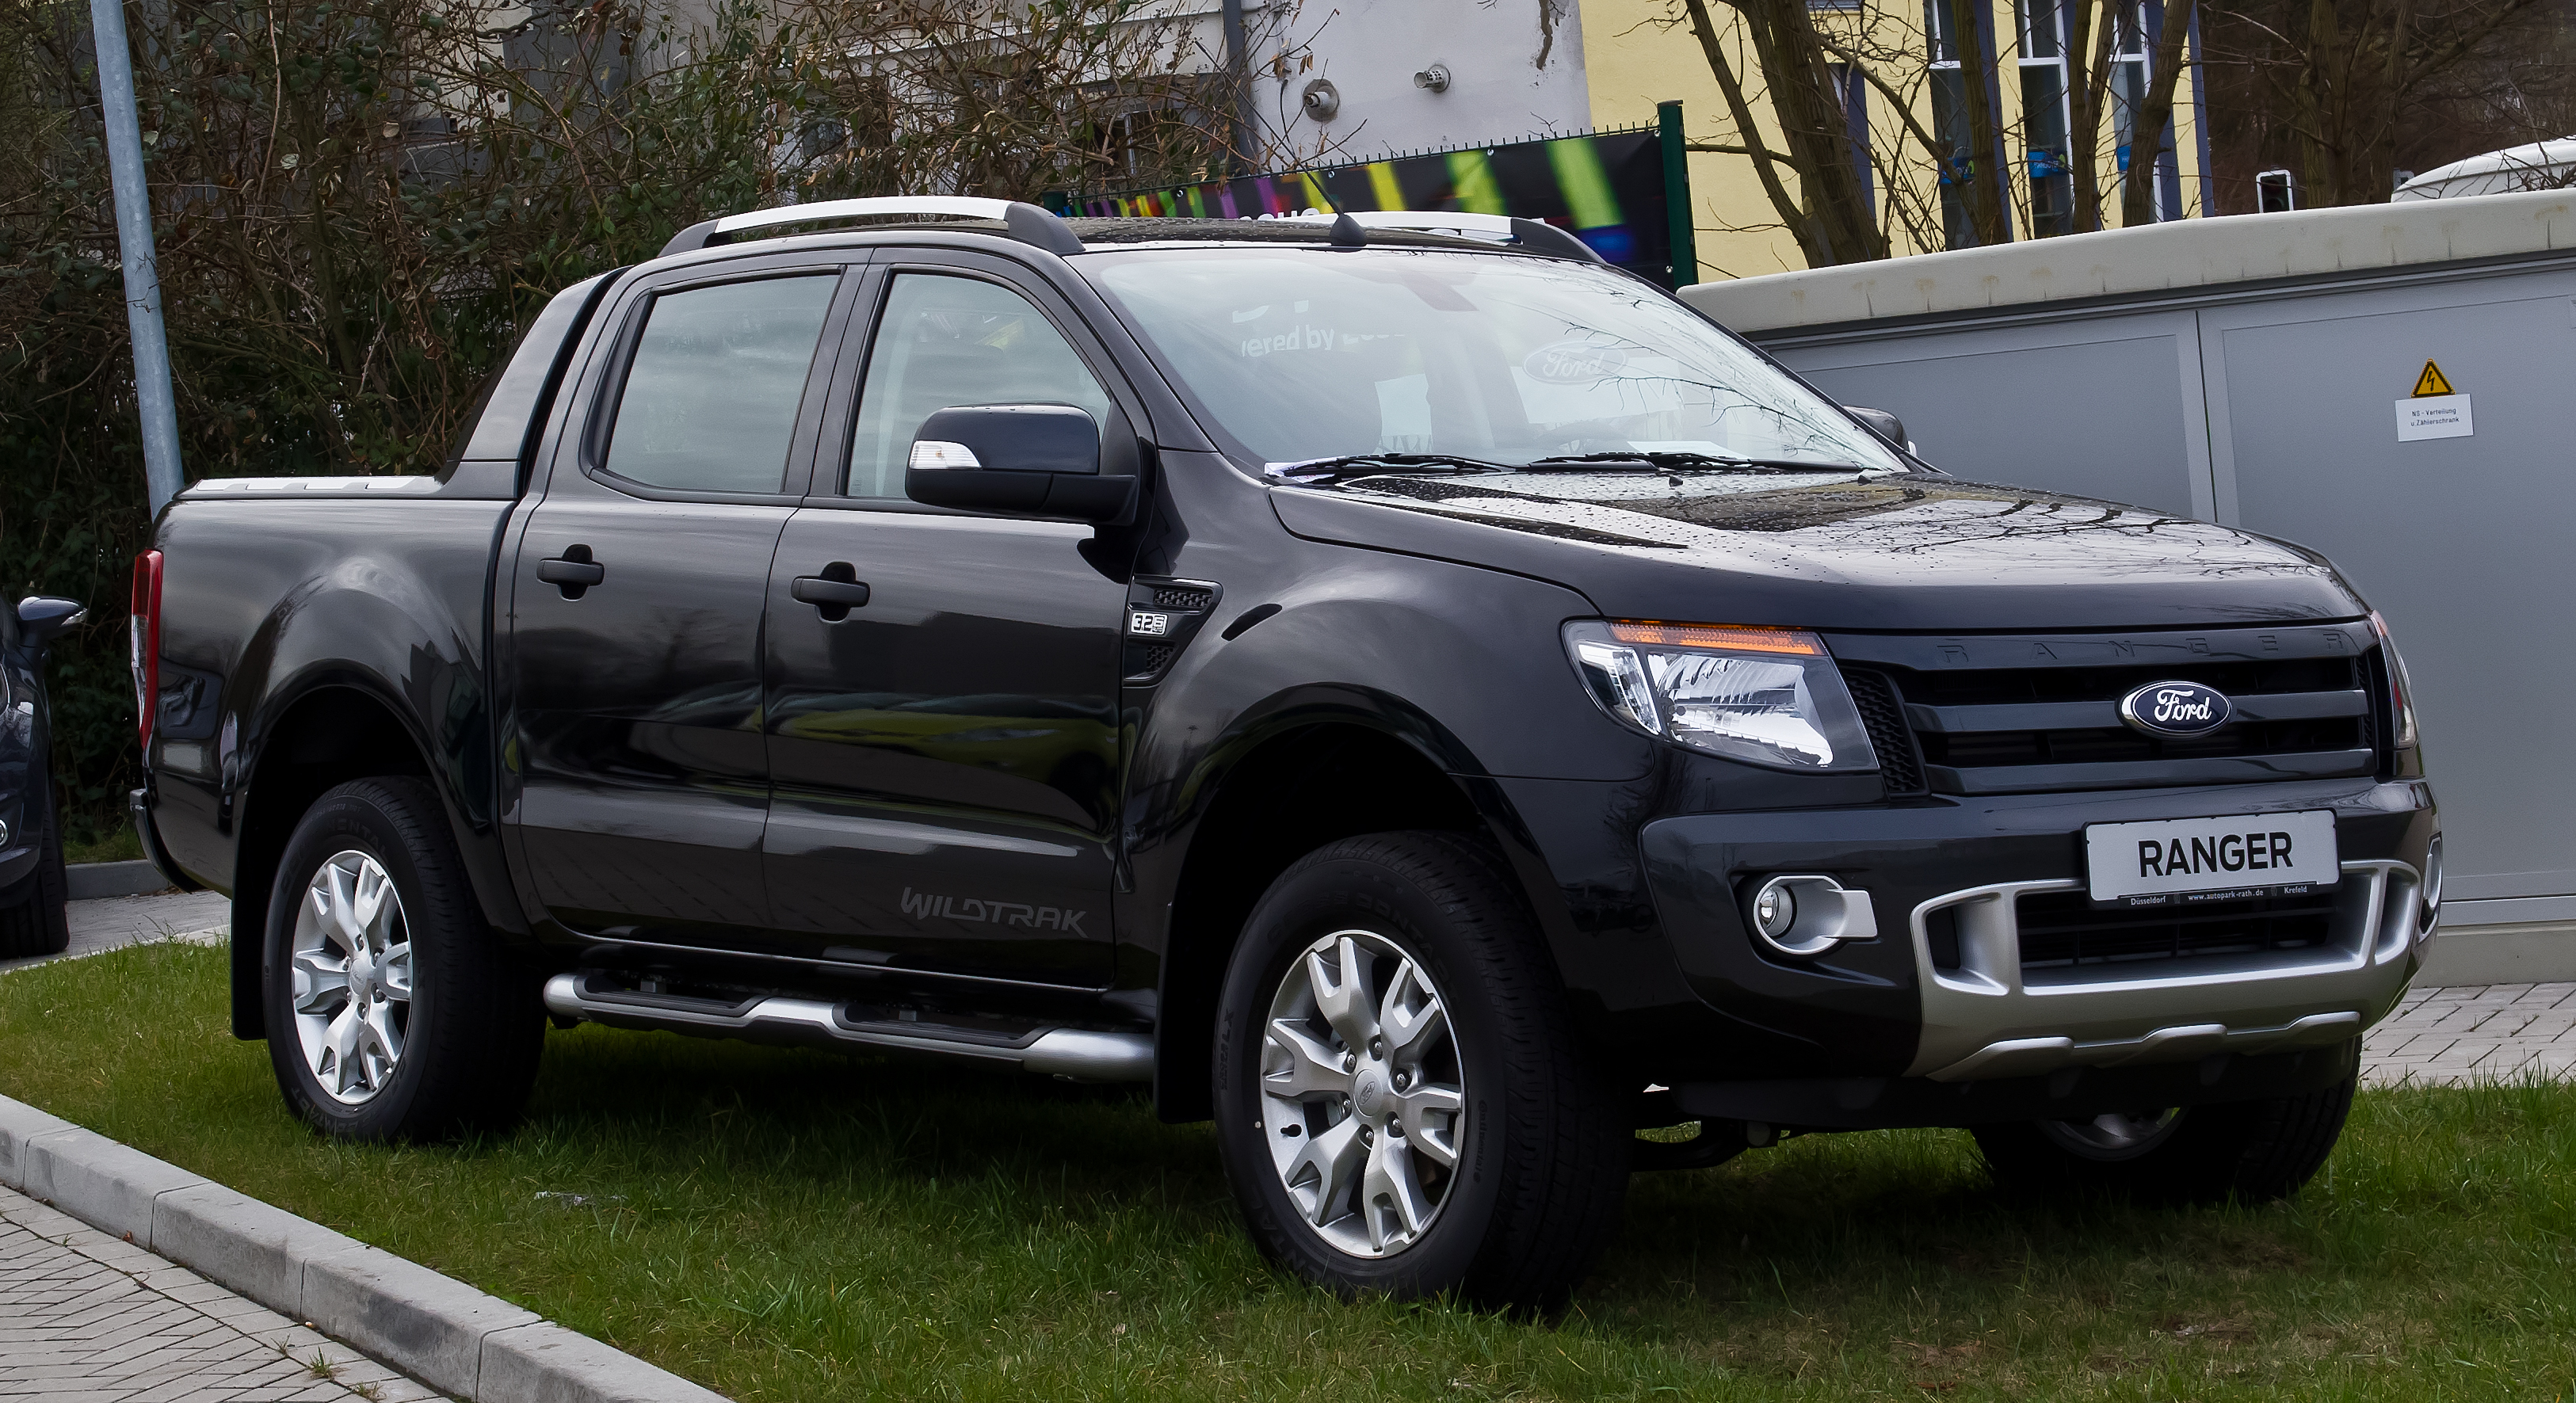 Ford Ranger 2.2 2014 photo - 1